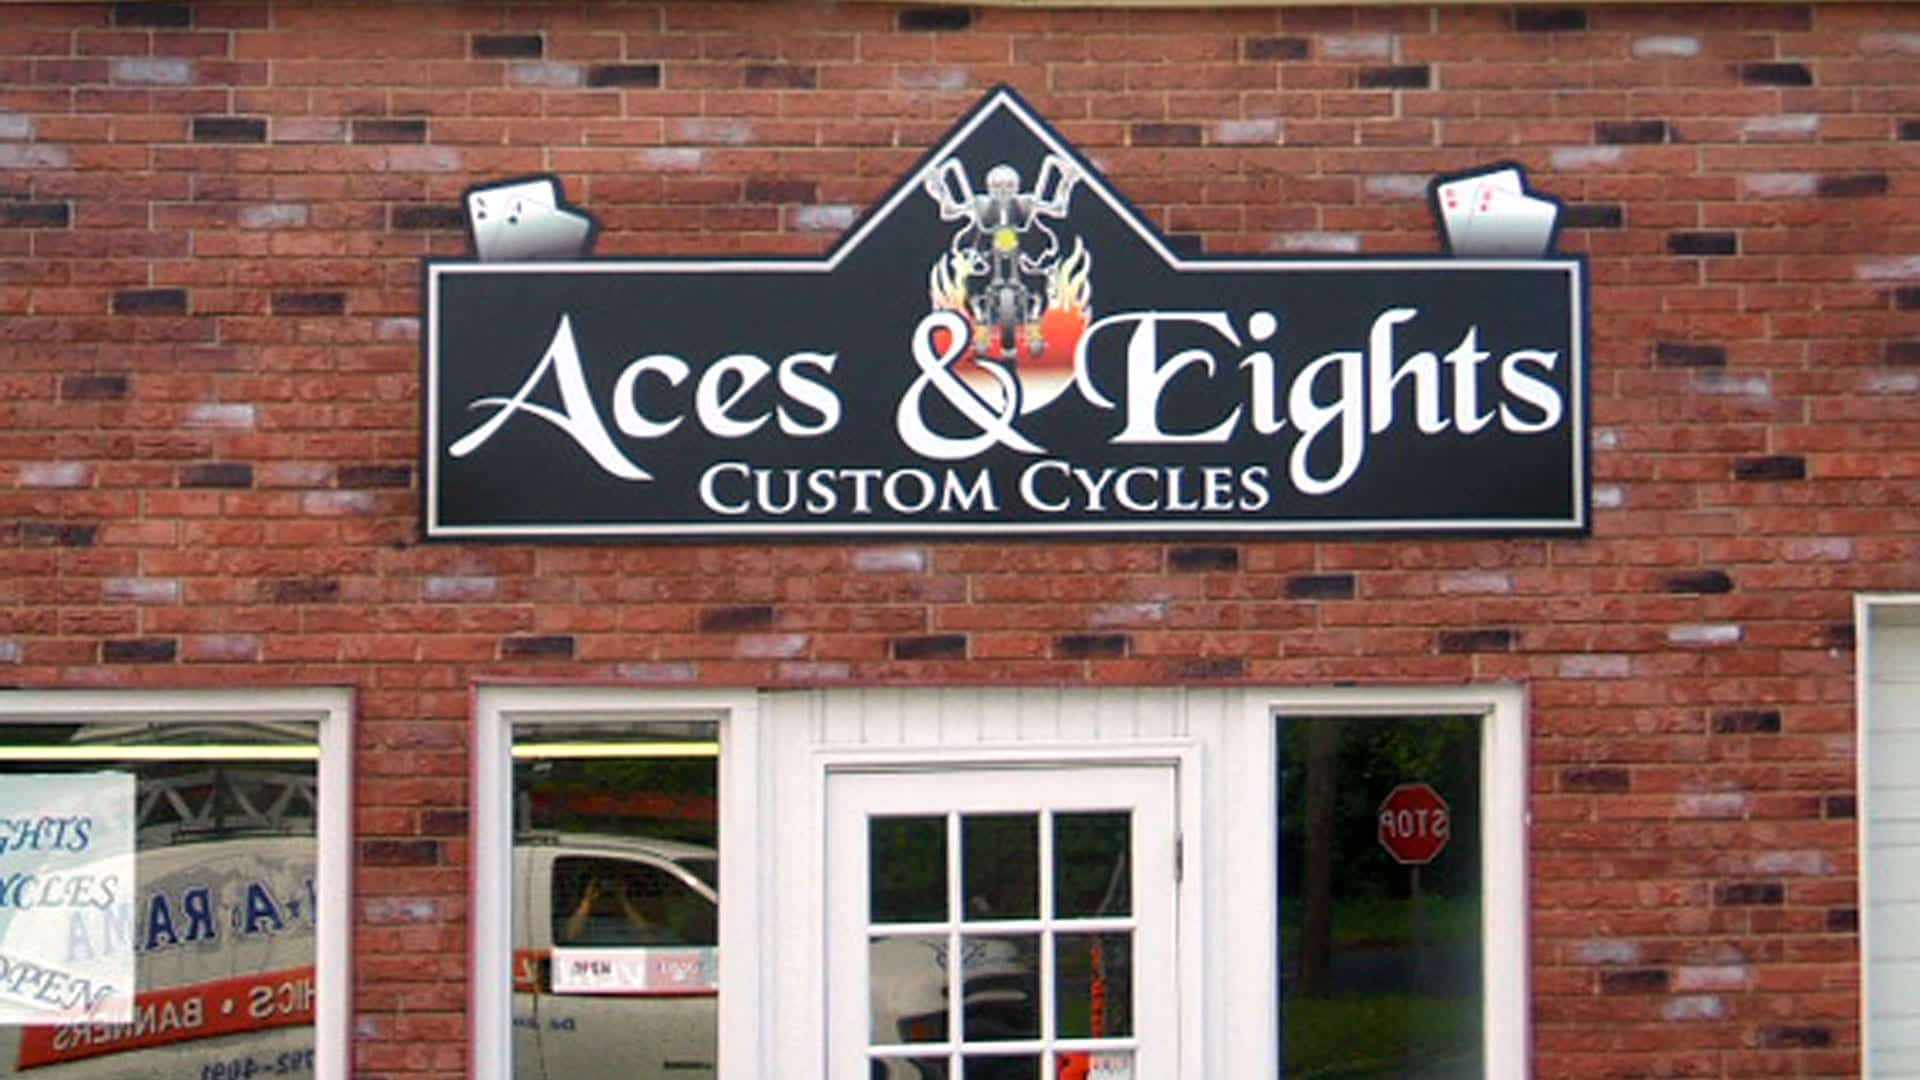 Exterior Wall Sign For Aces & Eights